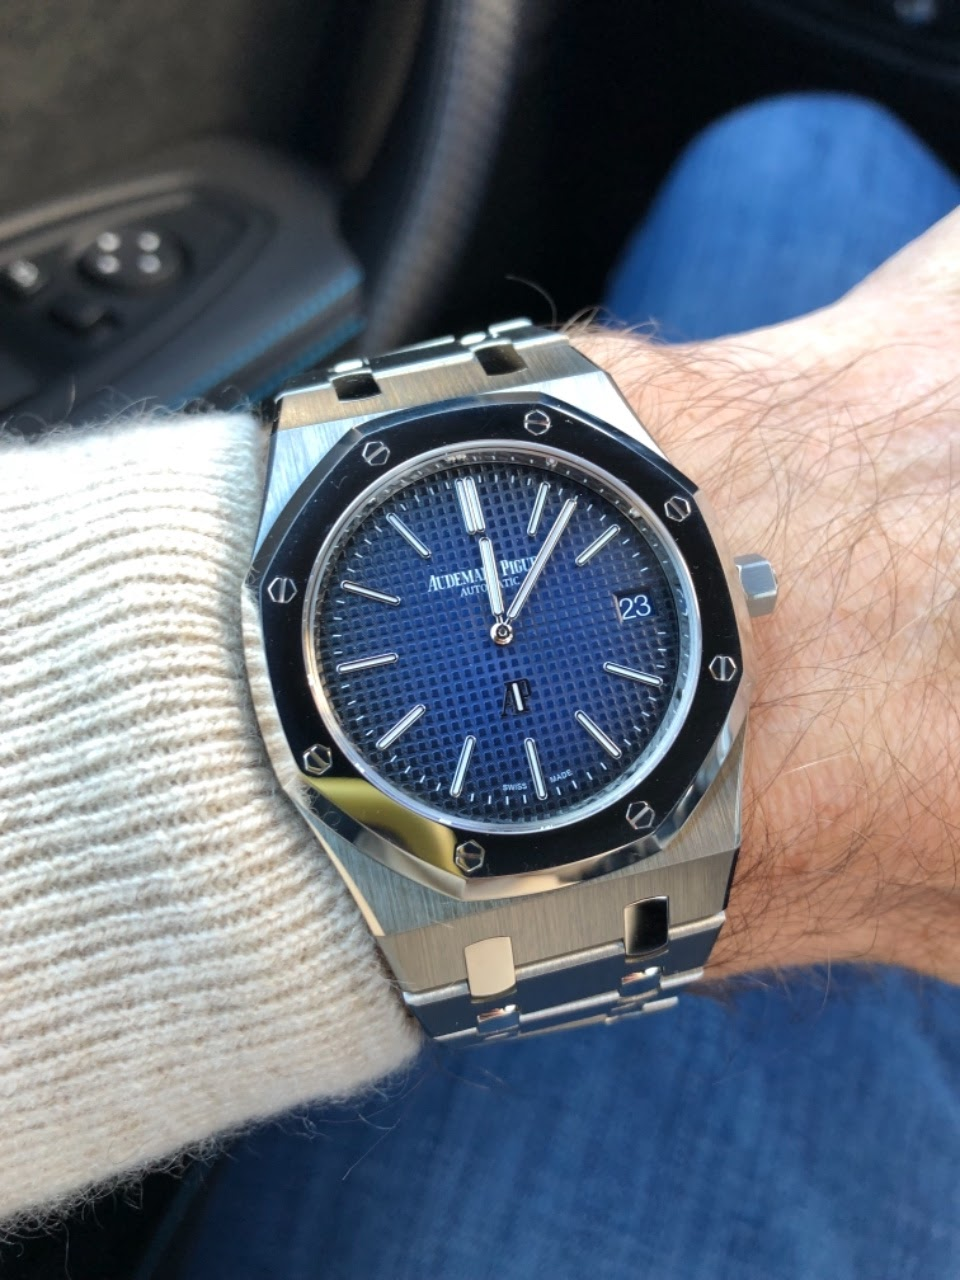 3f65c280a The combination of different materials and finishings as well as the  beautifully colored dial are just awesome. Enjoy the fresh photos. HAGWE.  Best, Volker